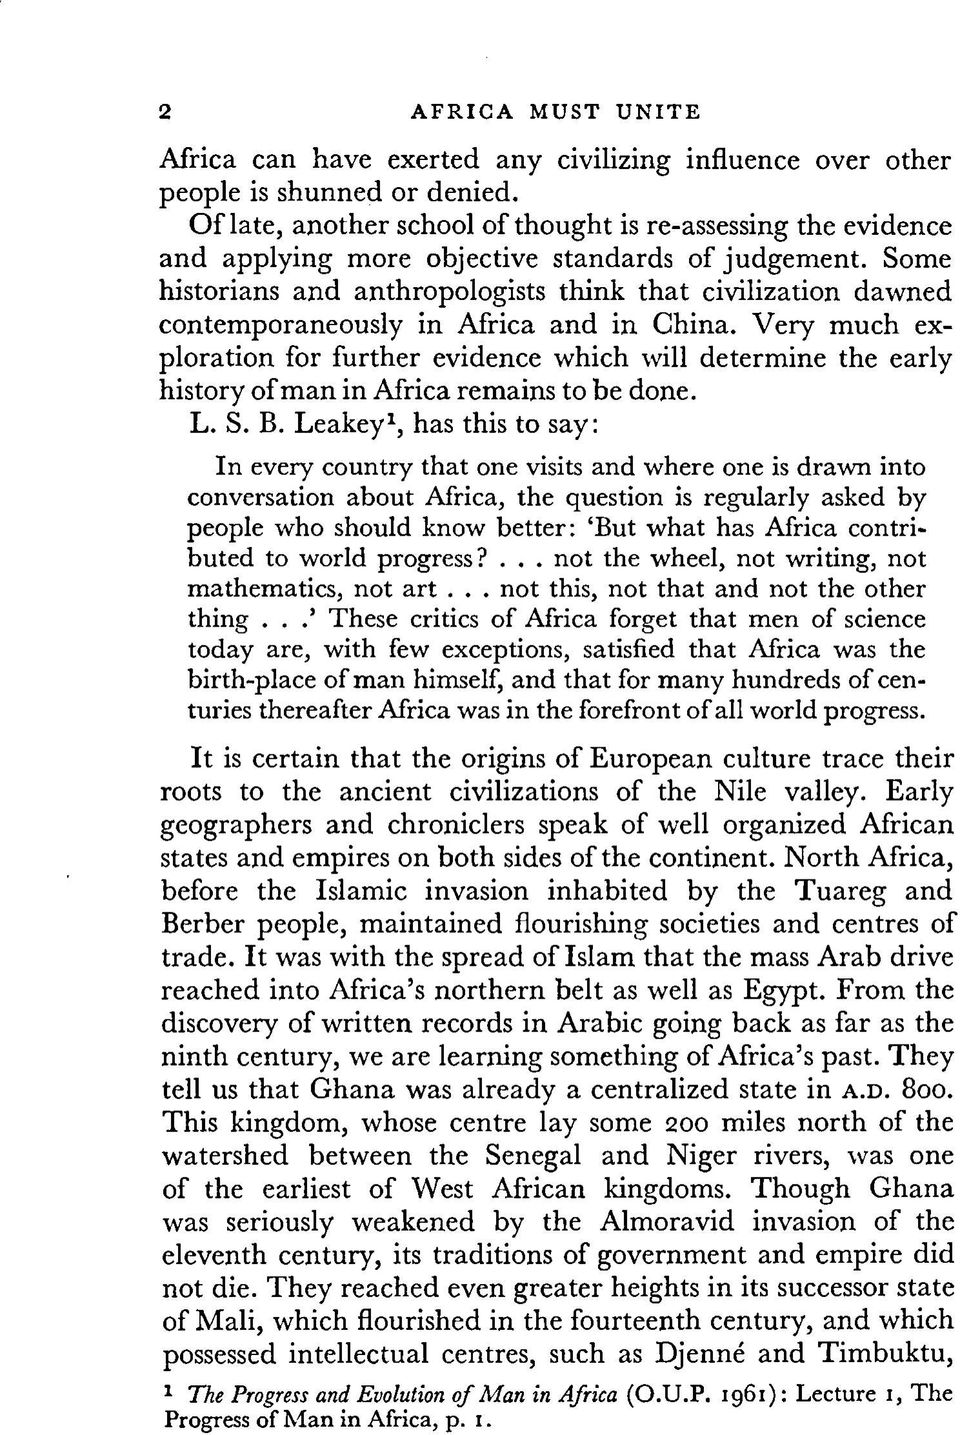 Some historians and anthropologists think that civilization dawned contem poraneously in Africa an d in C hina.